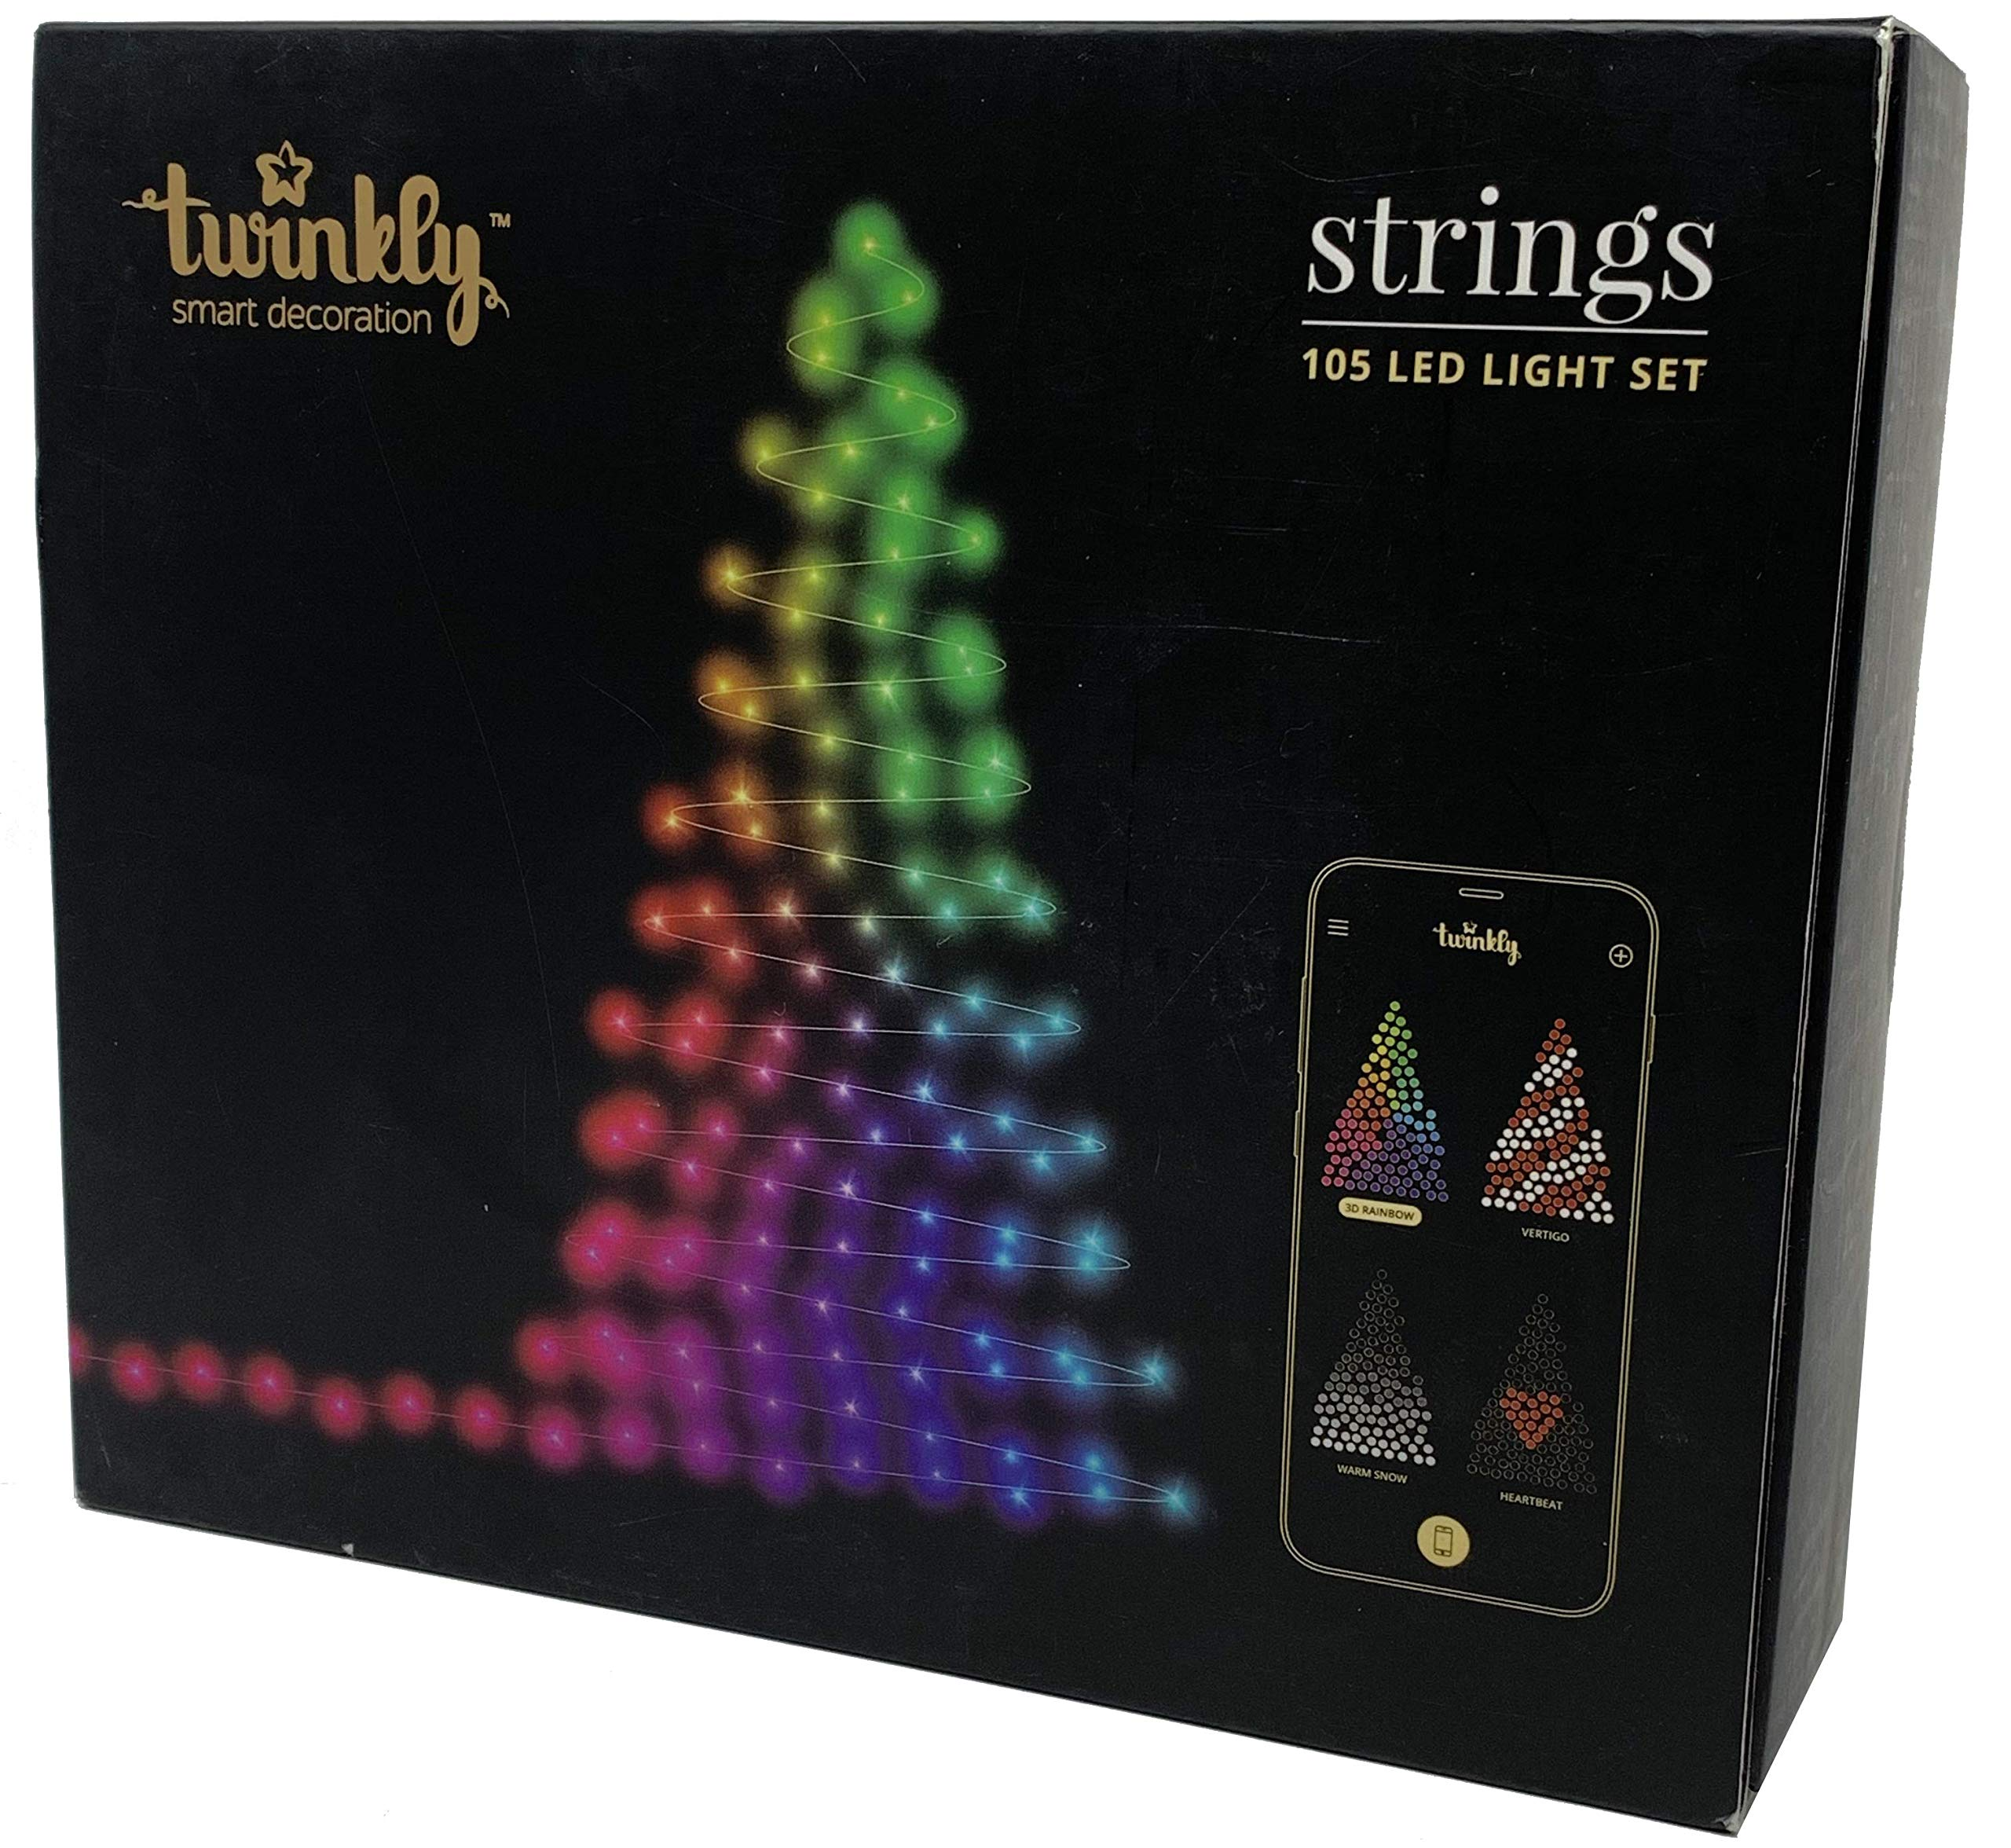 Twinkly LED String Lights, 105 Customizable LED Lights | Wifi-Enabled Light Set